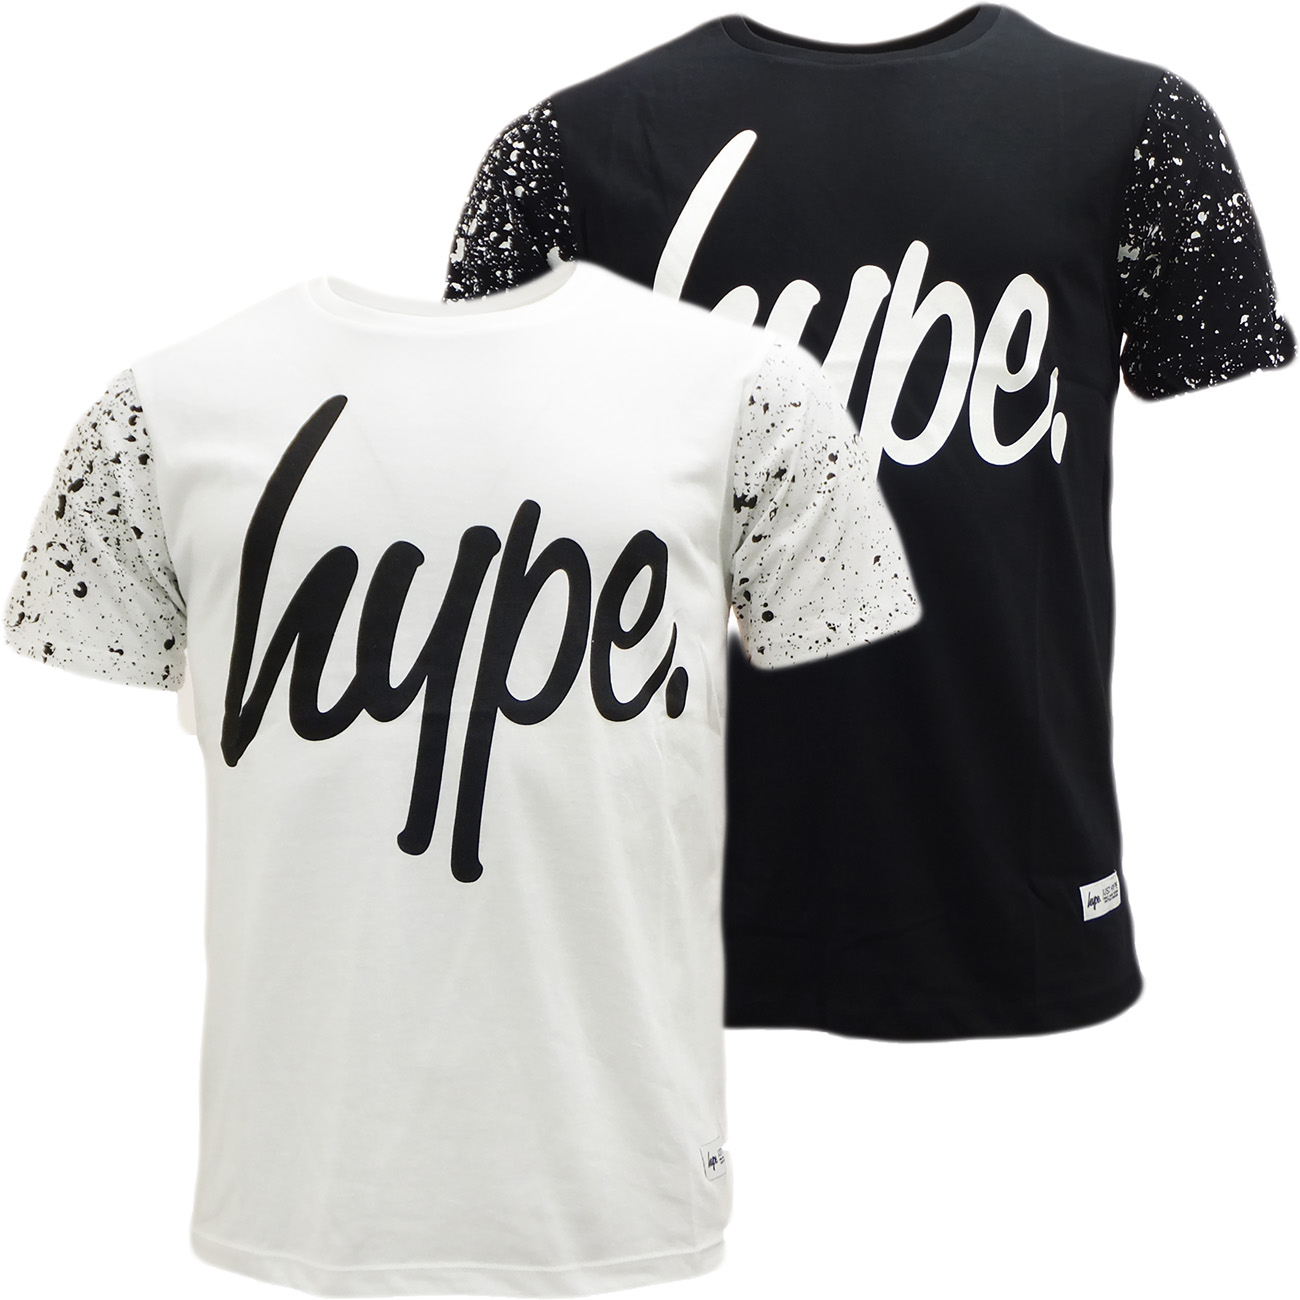 4ace8996 Sentinel Just Hype T Shirt - Sleeve Panel